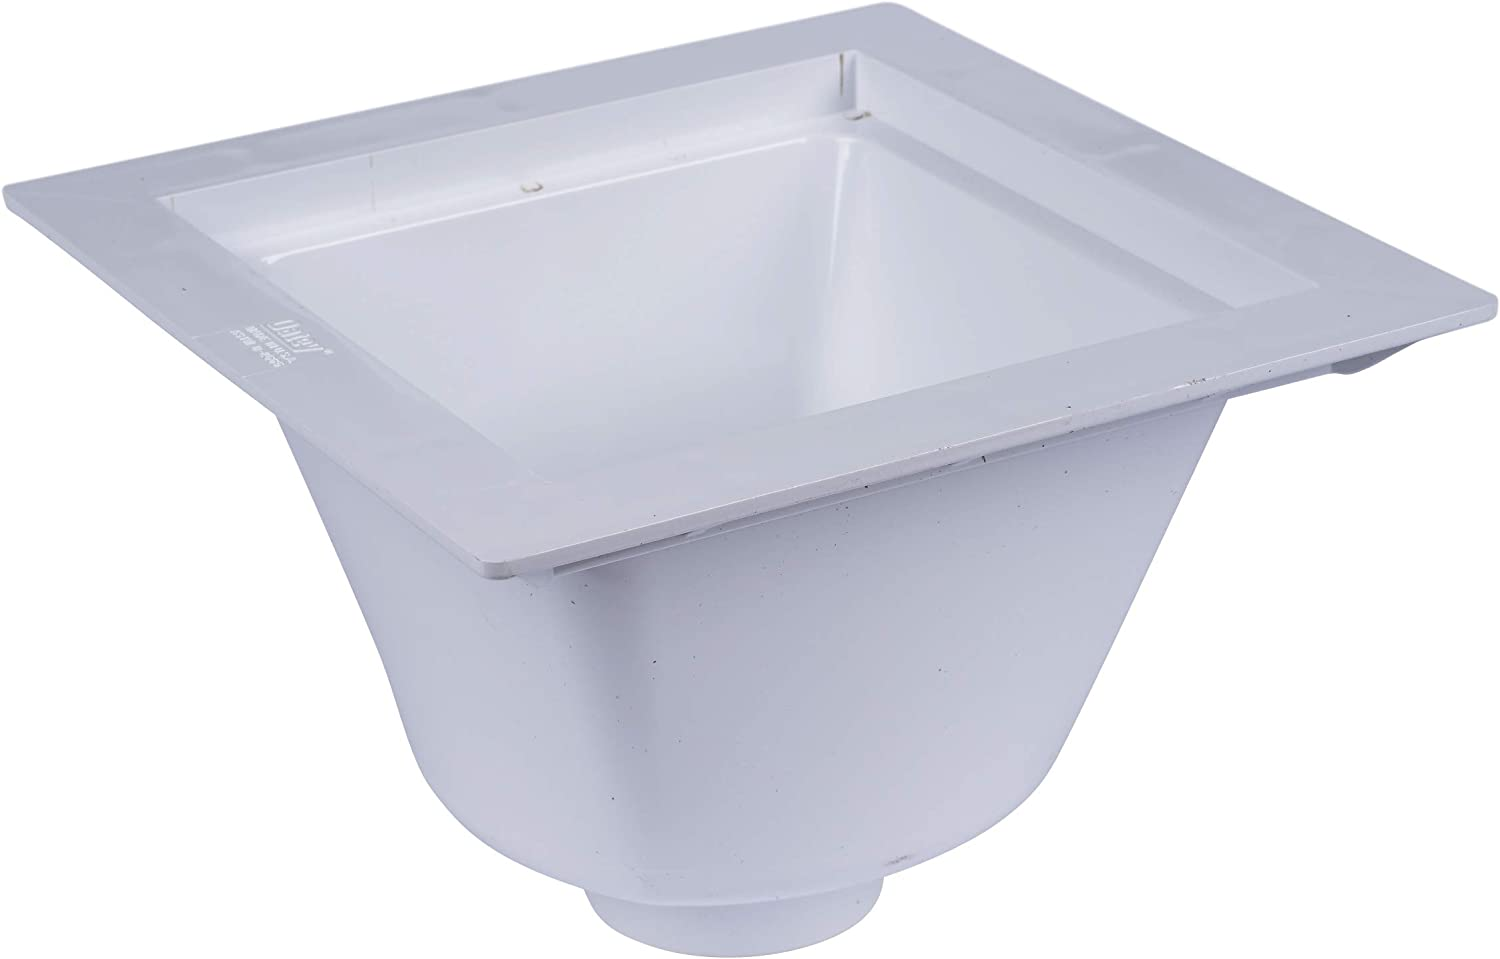 Oatey 42721 Floor-Mounted Utility Sink with 3-Inch Socket